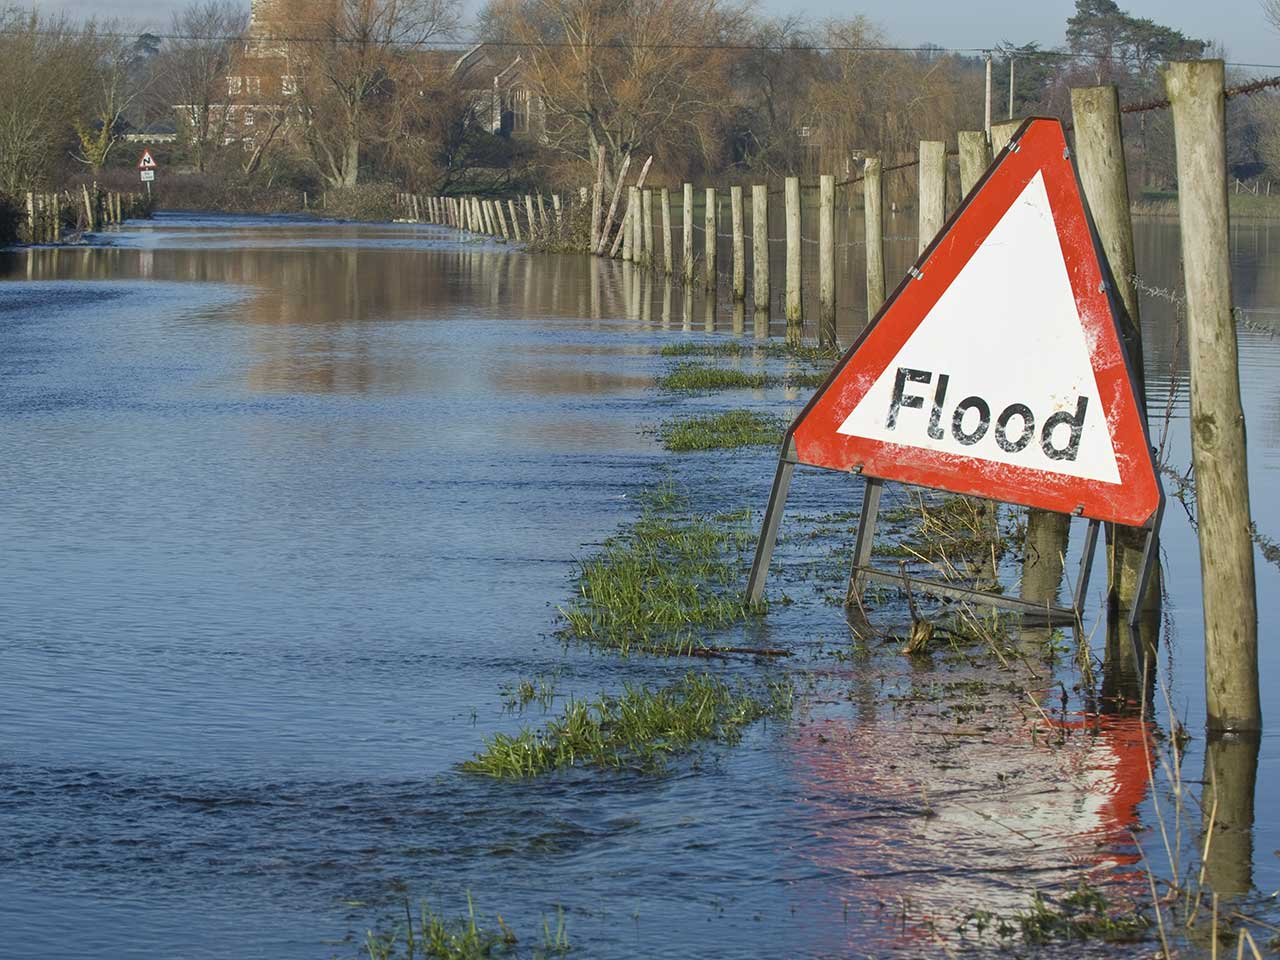 Flooded road with warning traffic sign